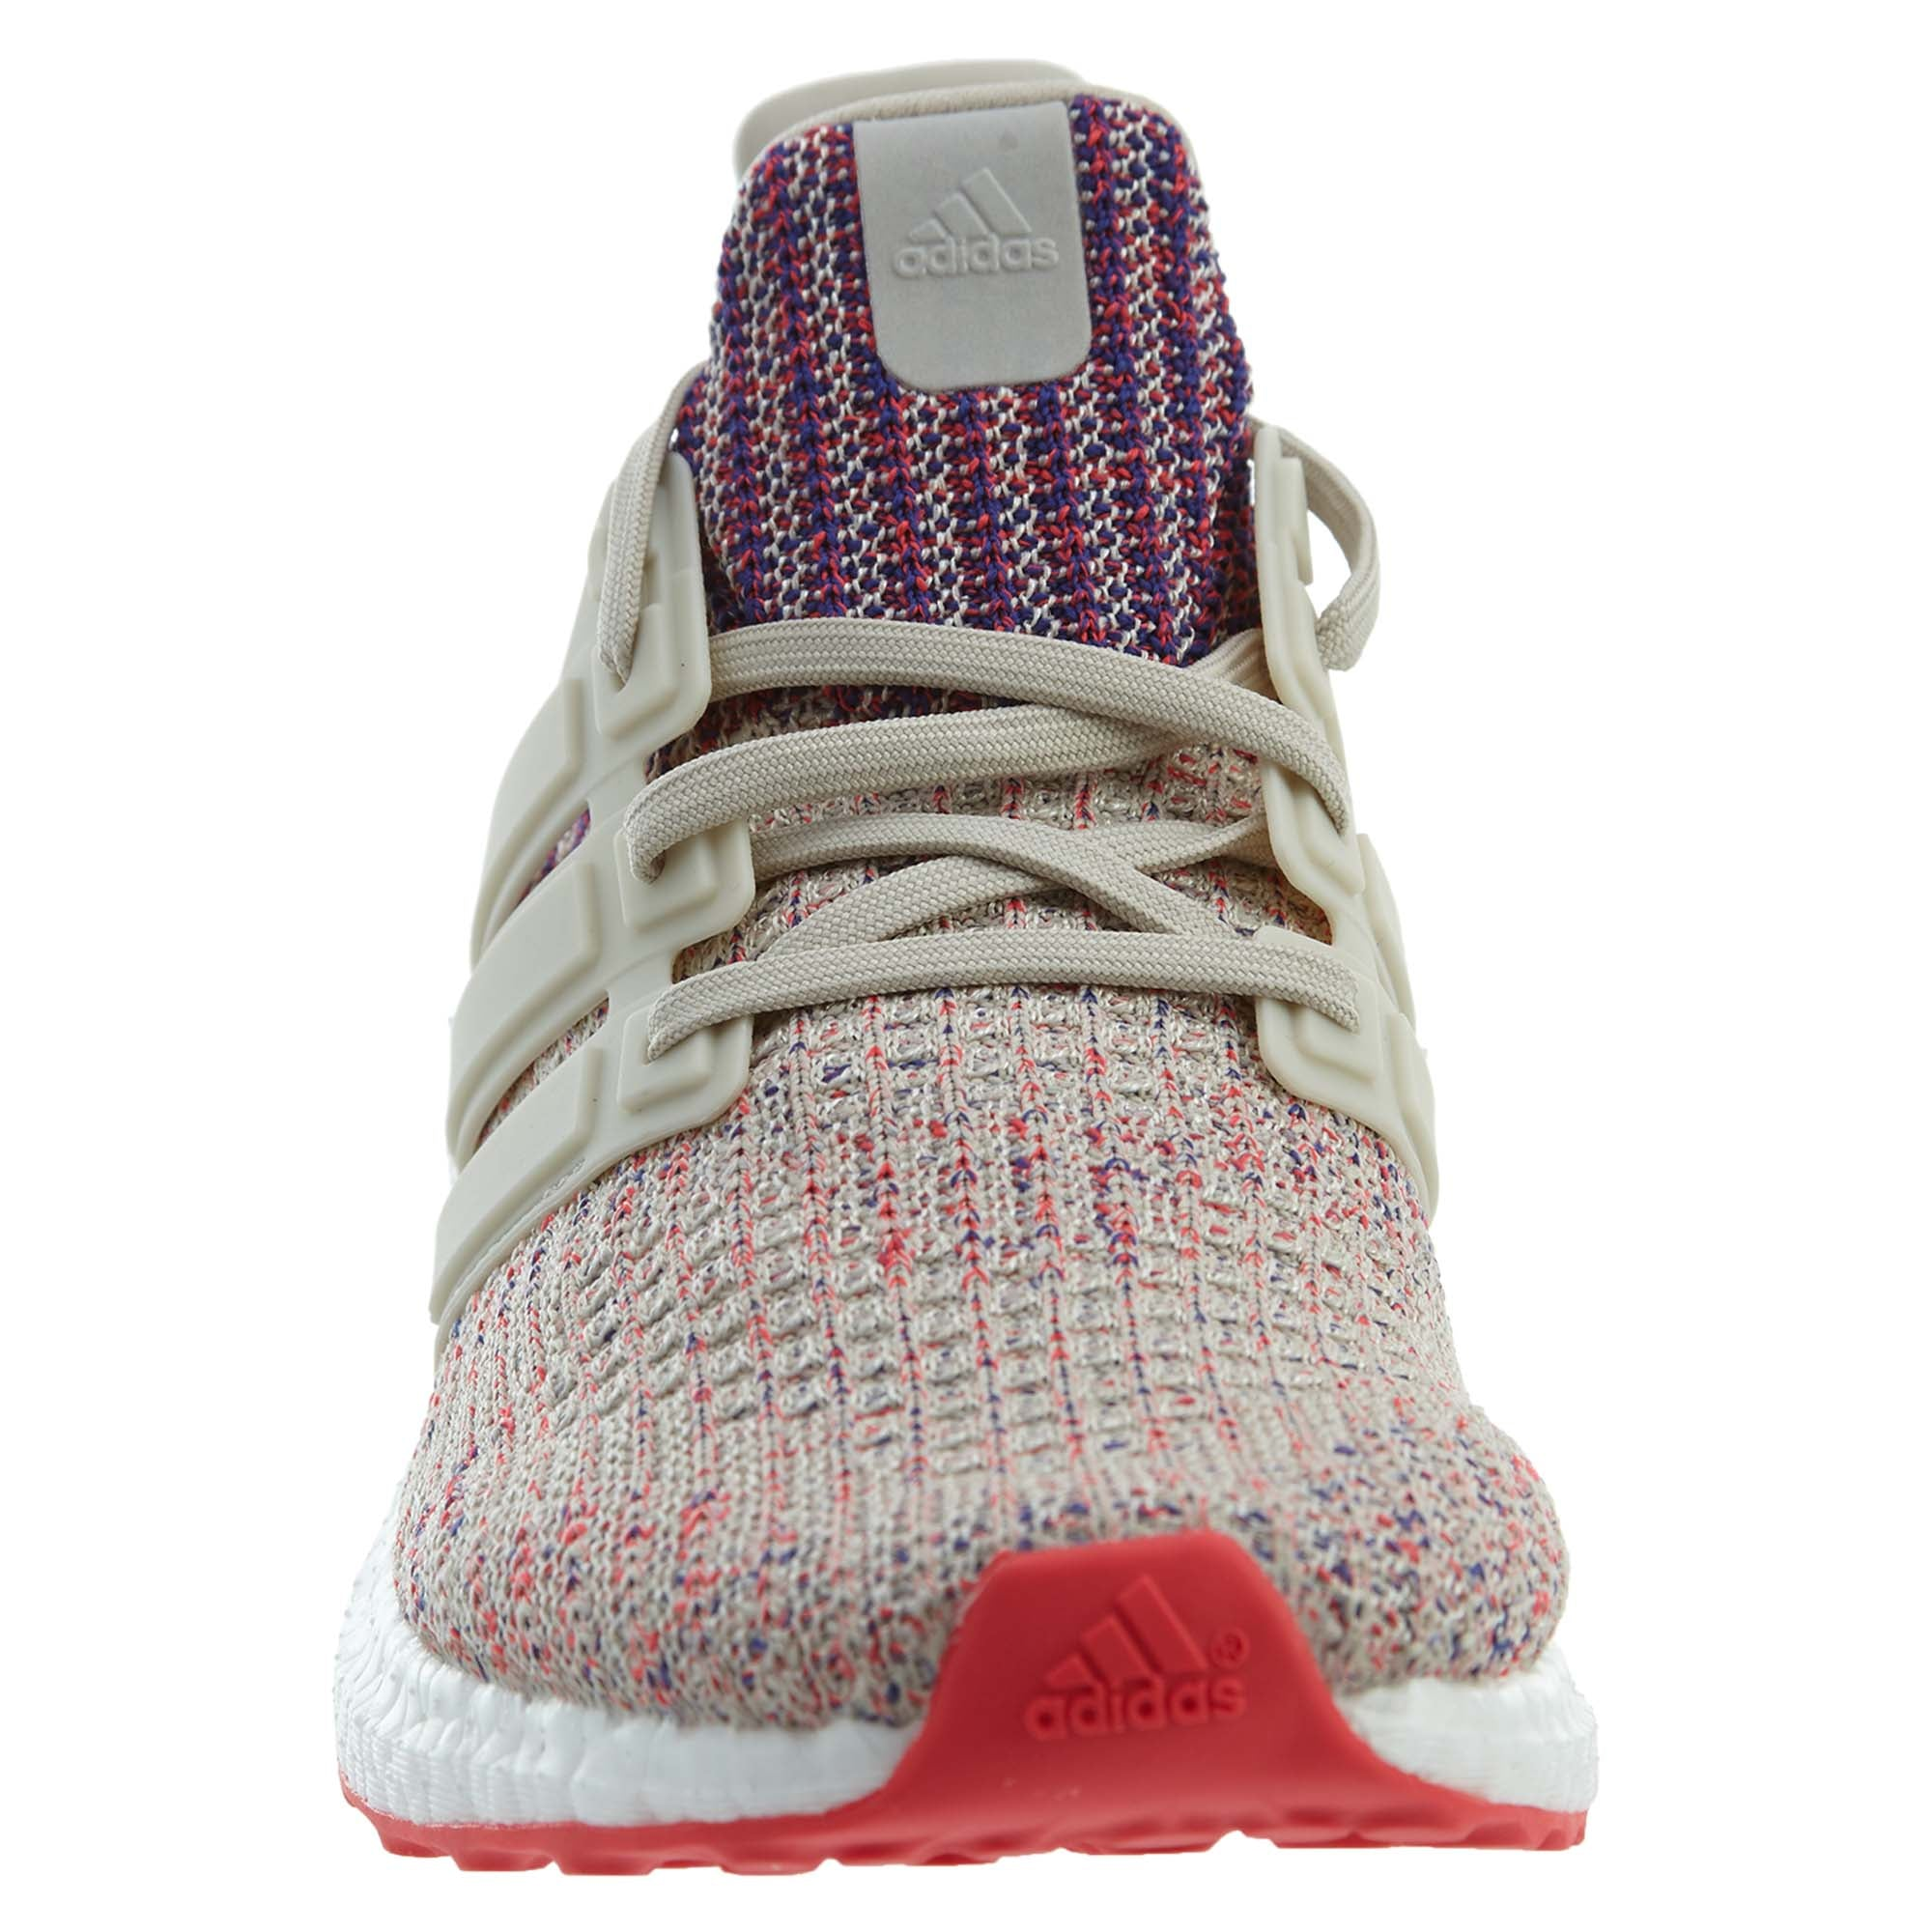 6263fa811bae8 Adidas Ultraboost Womens Style   F36122 · ADIDAS   Athletic Shoes   Sneakers